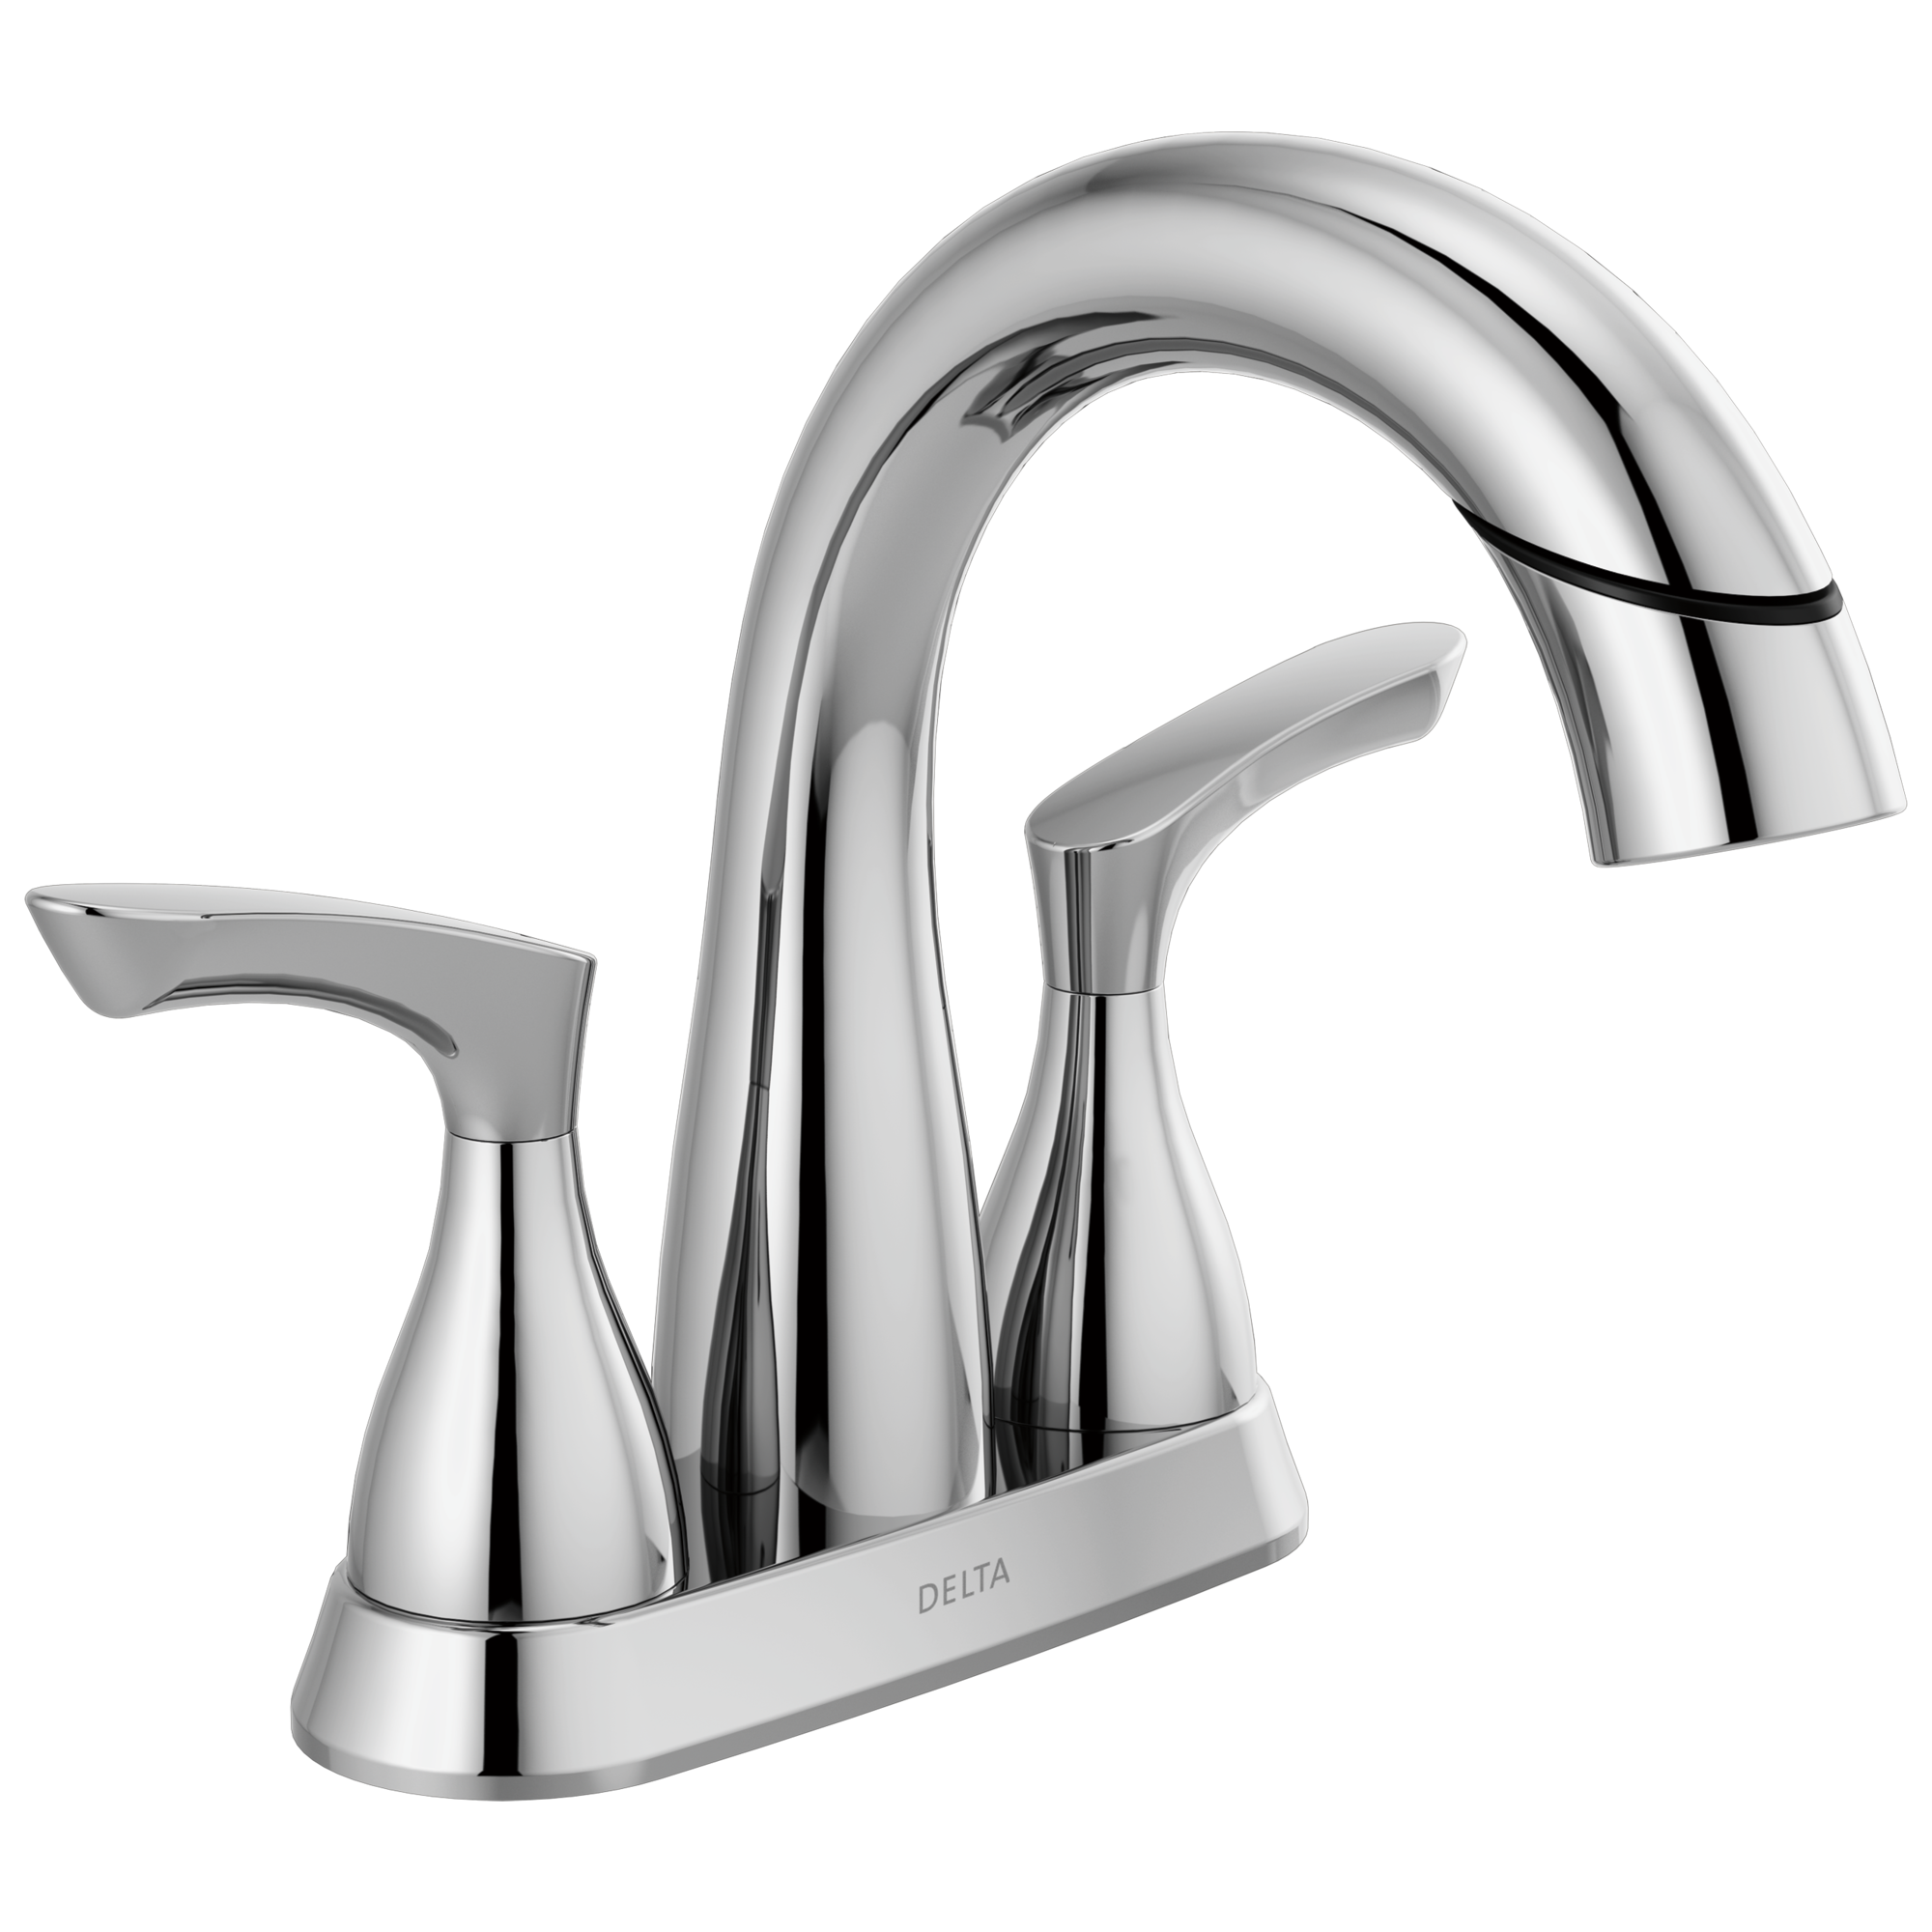 Diagram Of Parts For Single Handle Centerset Bathroom Faucet Models